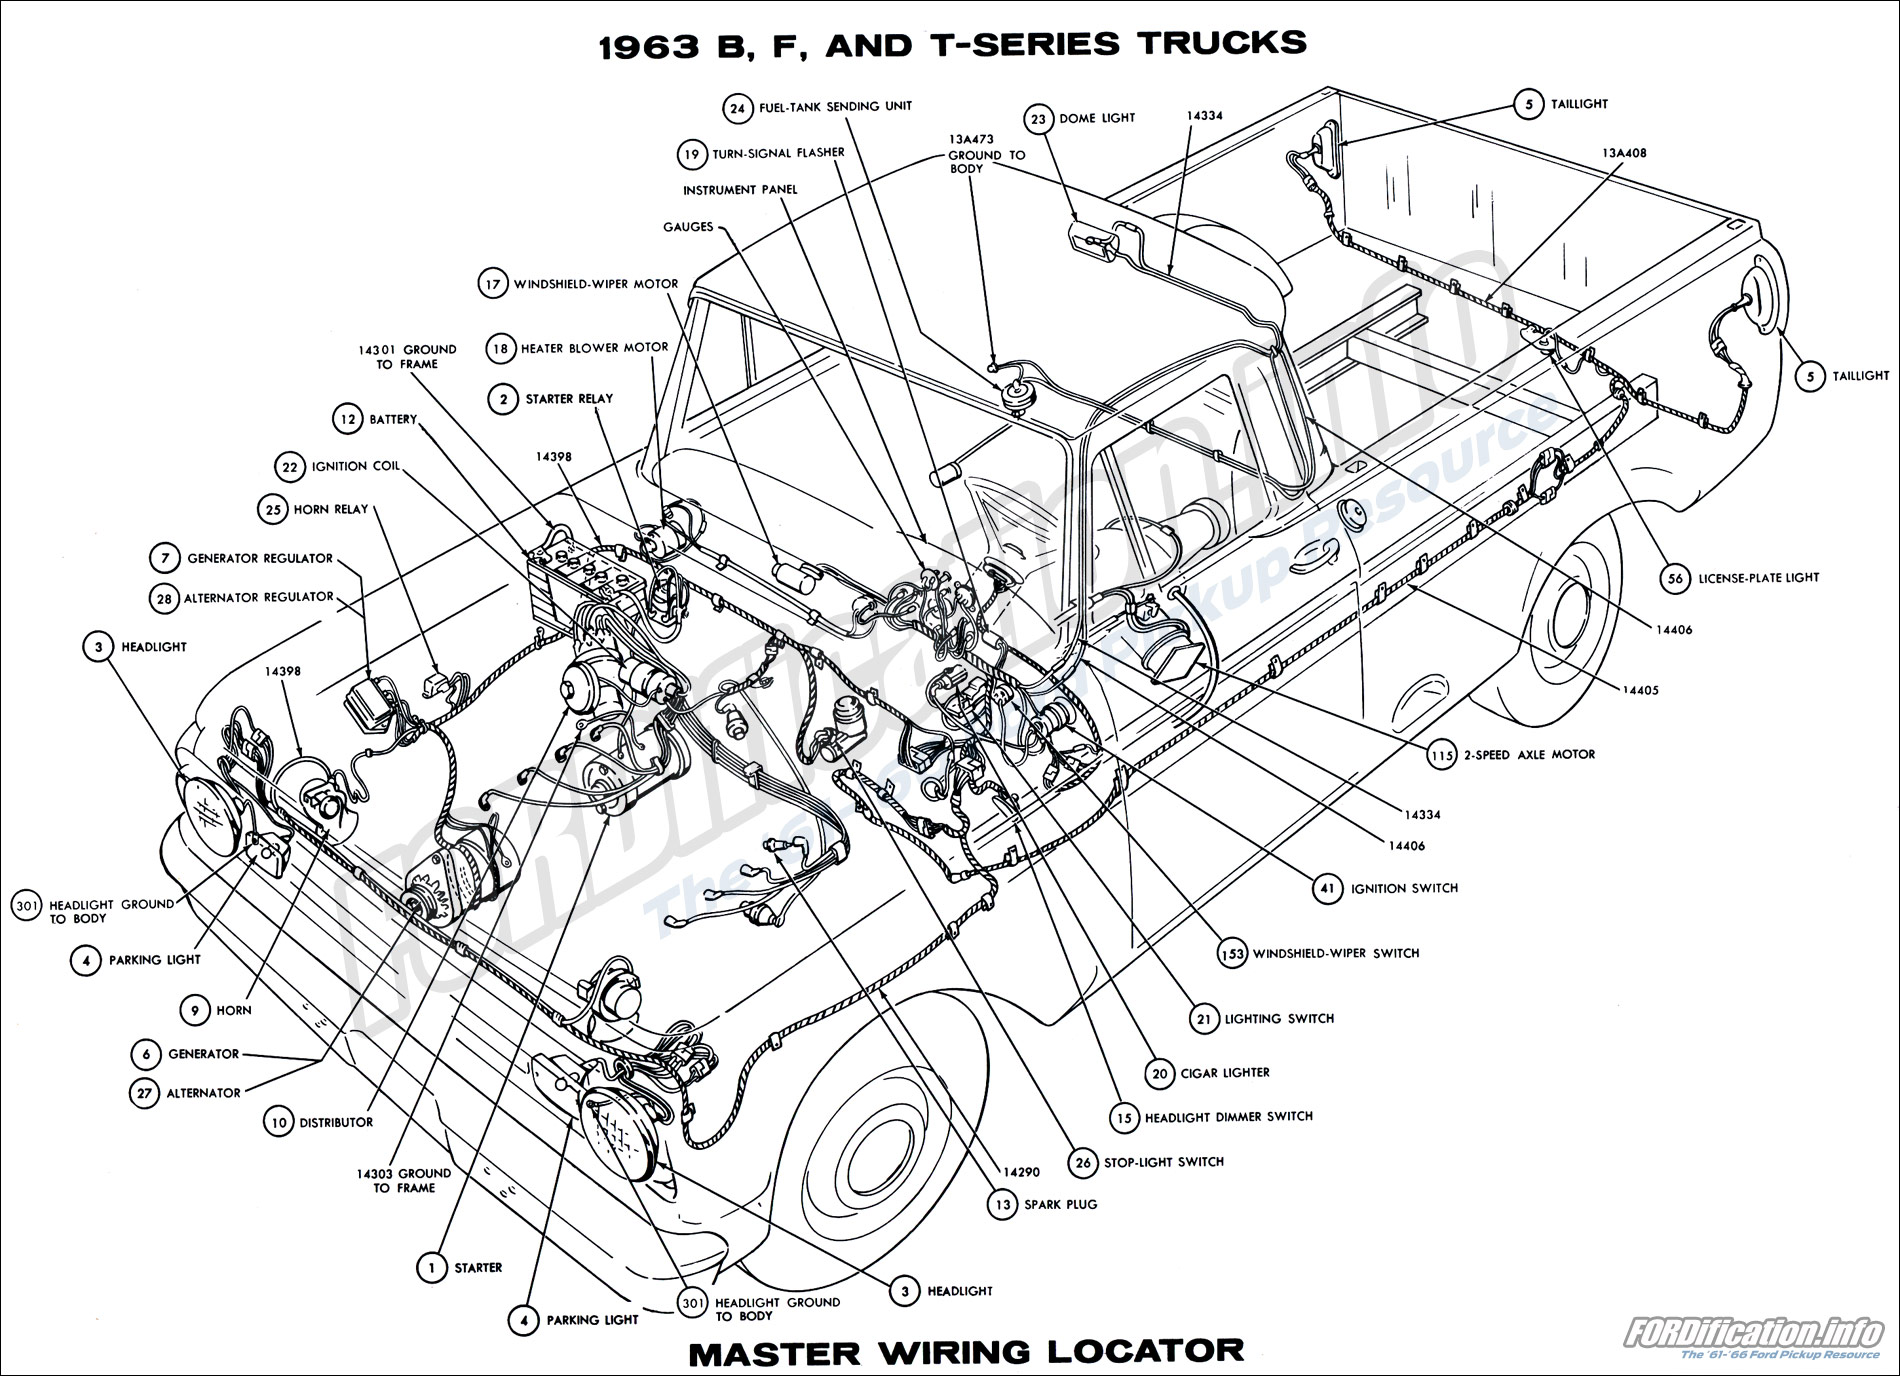 1963 ford truck wiring diagrams - fordification.info - the '61-'66 ford  pickup resource  fordification.info